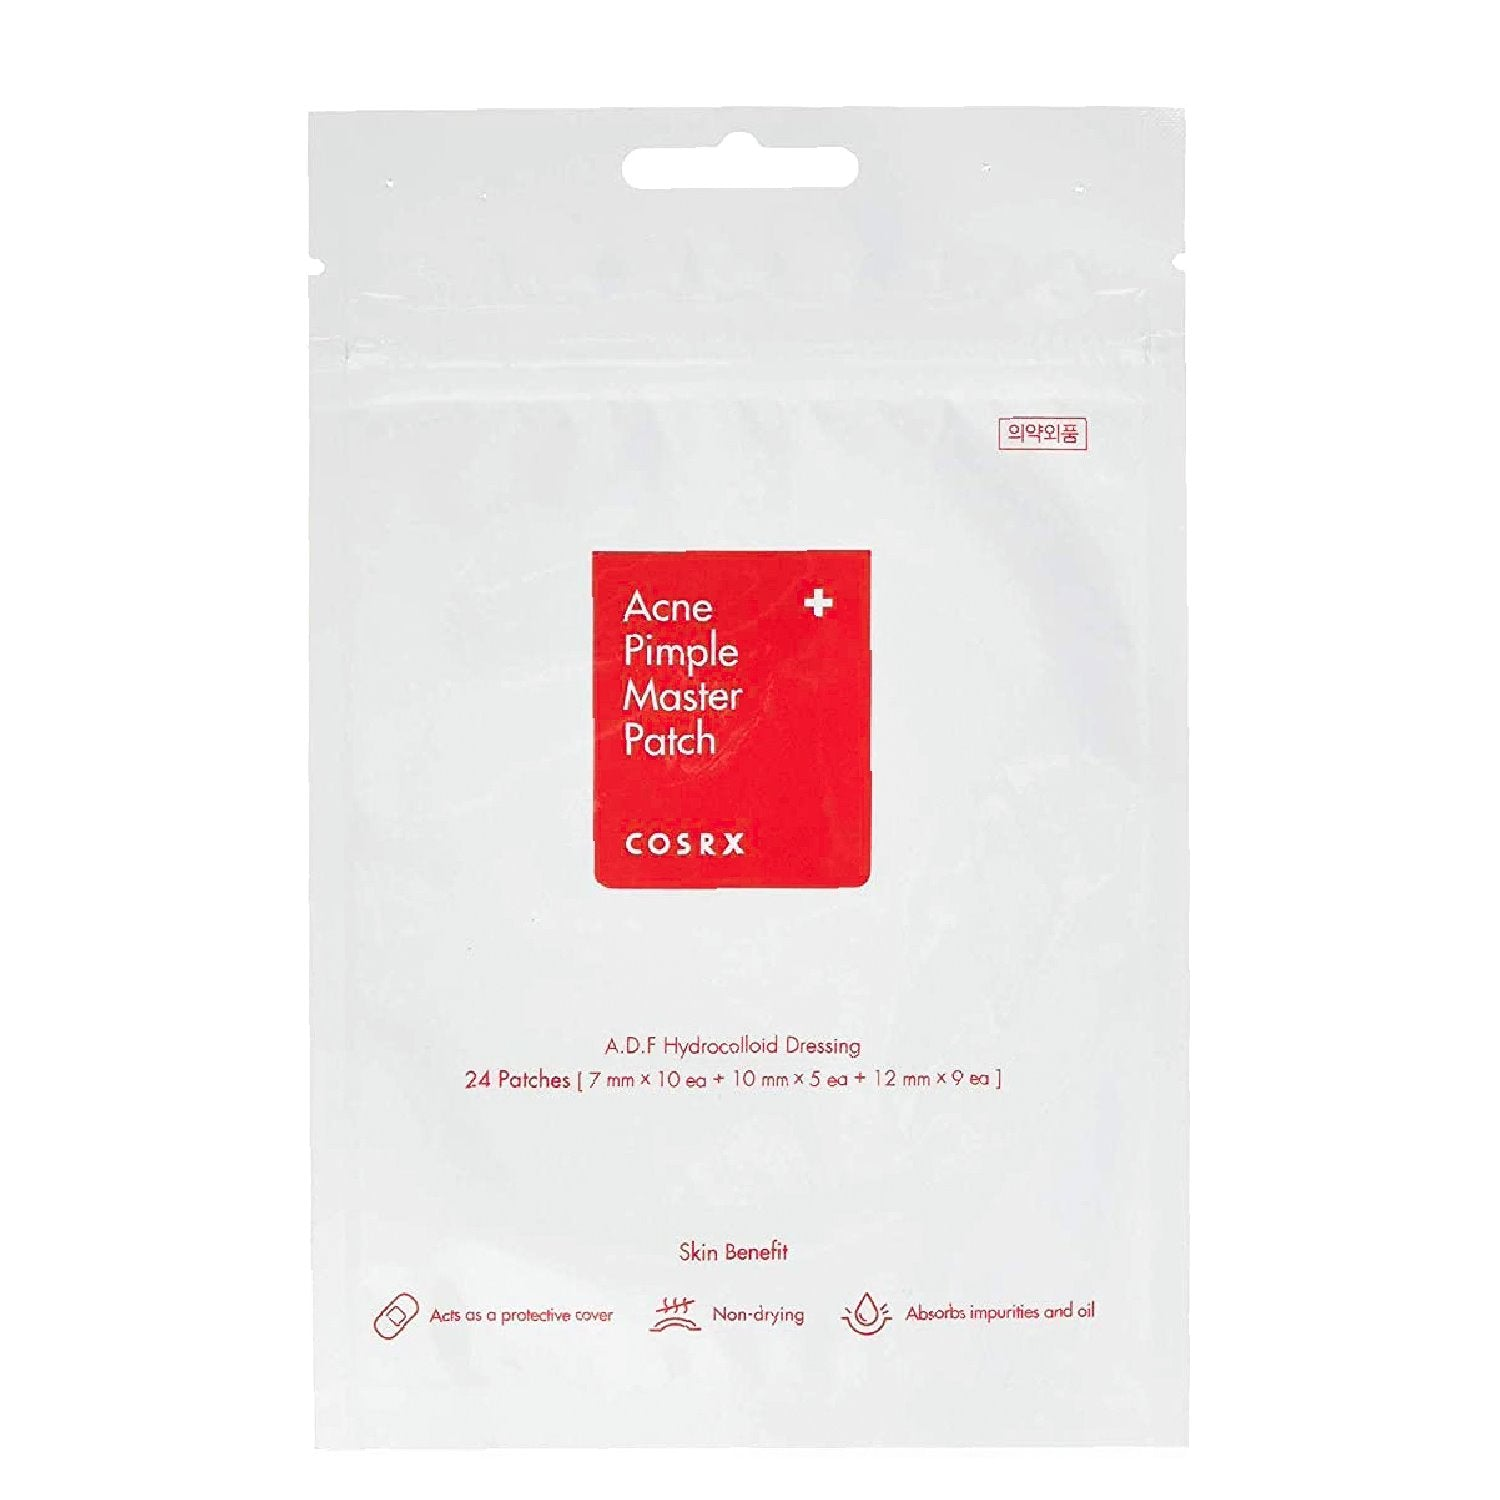 Acne Pimple Master Patch (24 patches) Spot Treatment COSRX